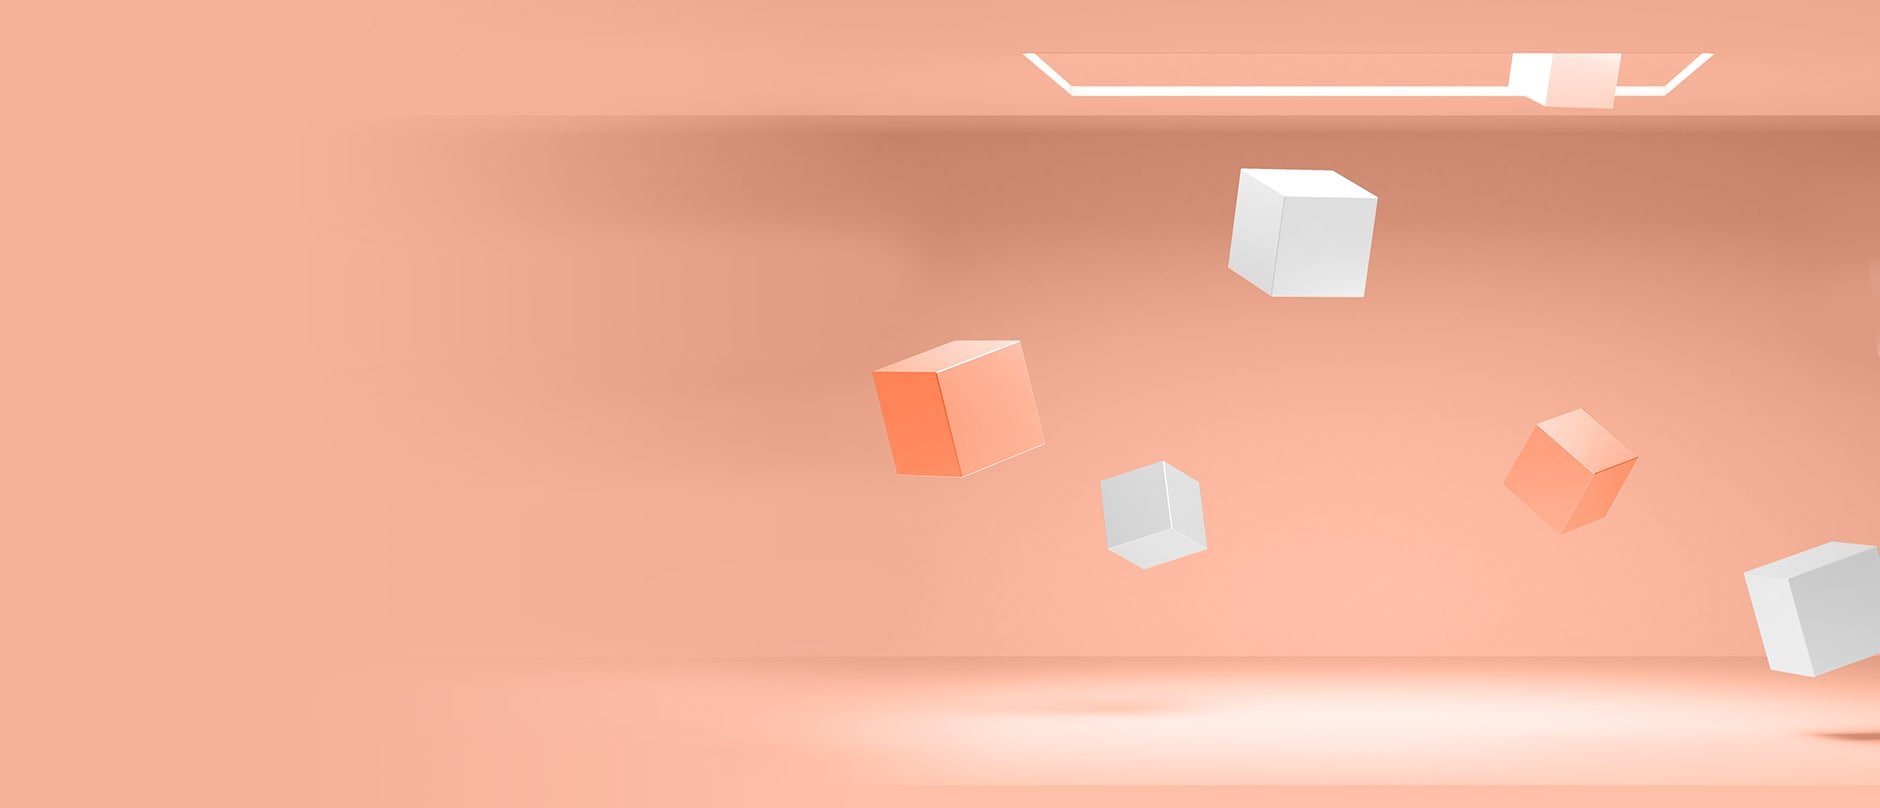 peach and white squares floating on peach background